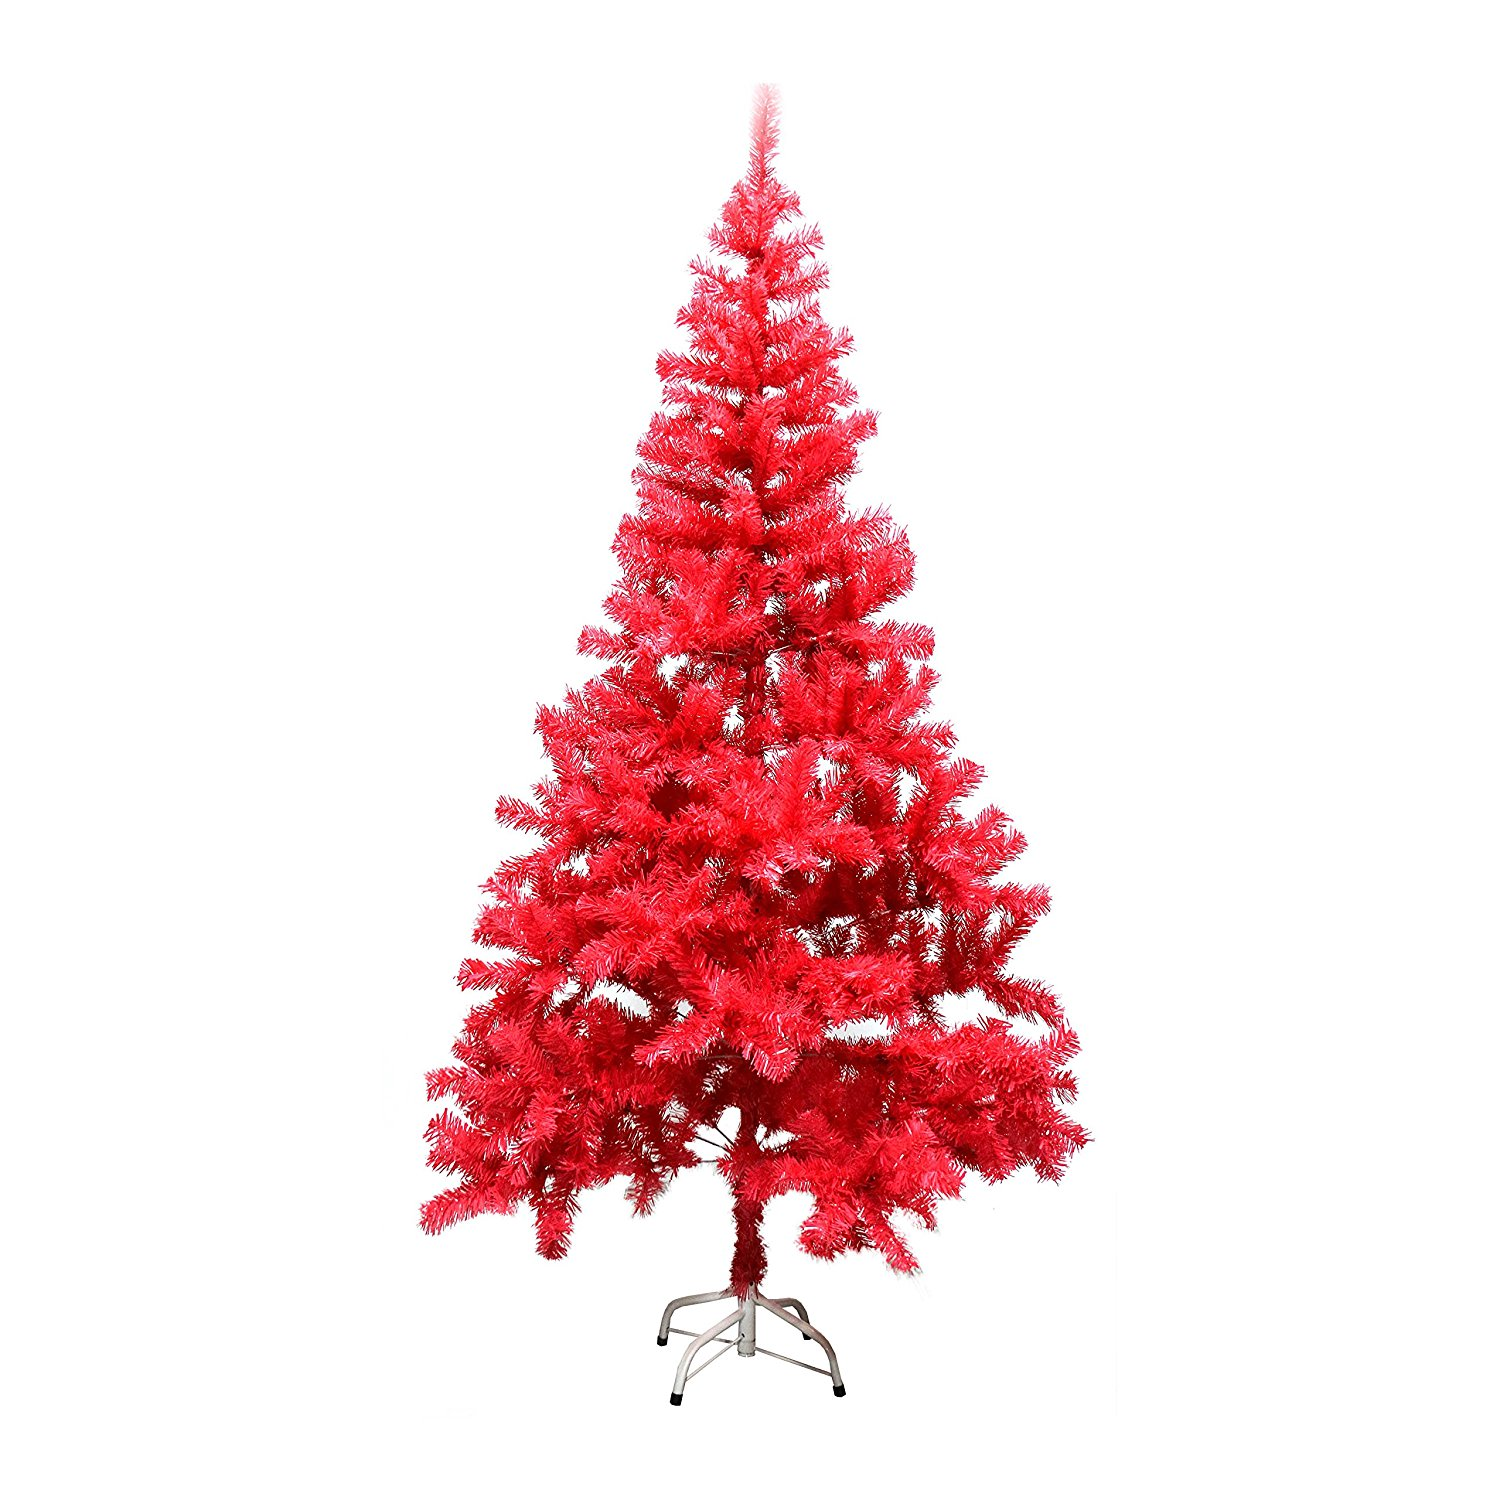 ALEKO CTP70H650 6-Foot Tall Artificial Holiday Plastic PVC Tree, Pink